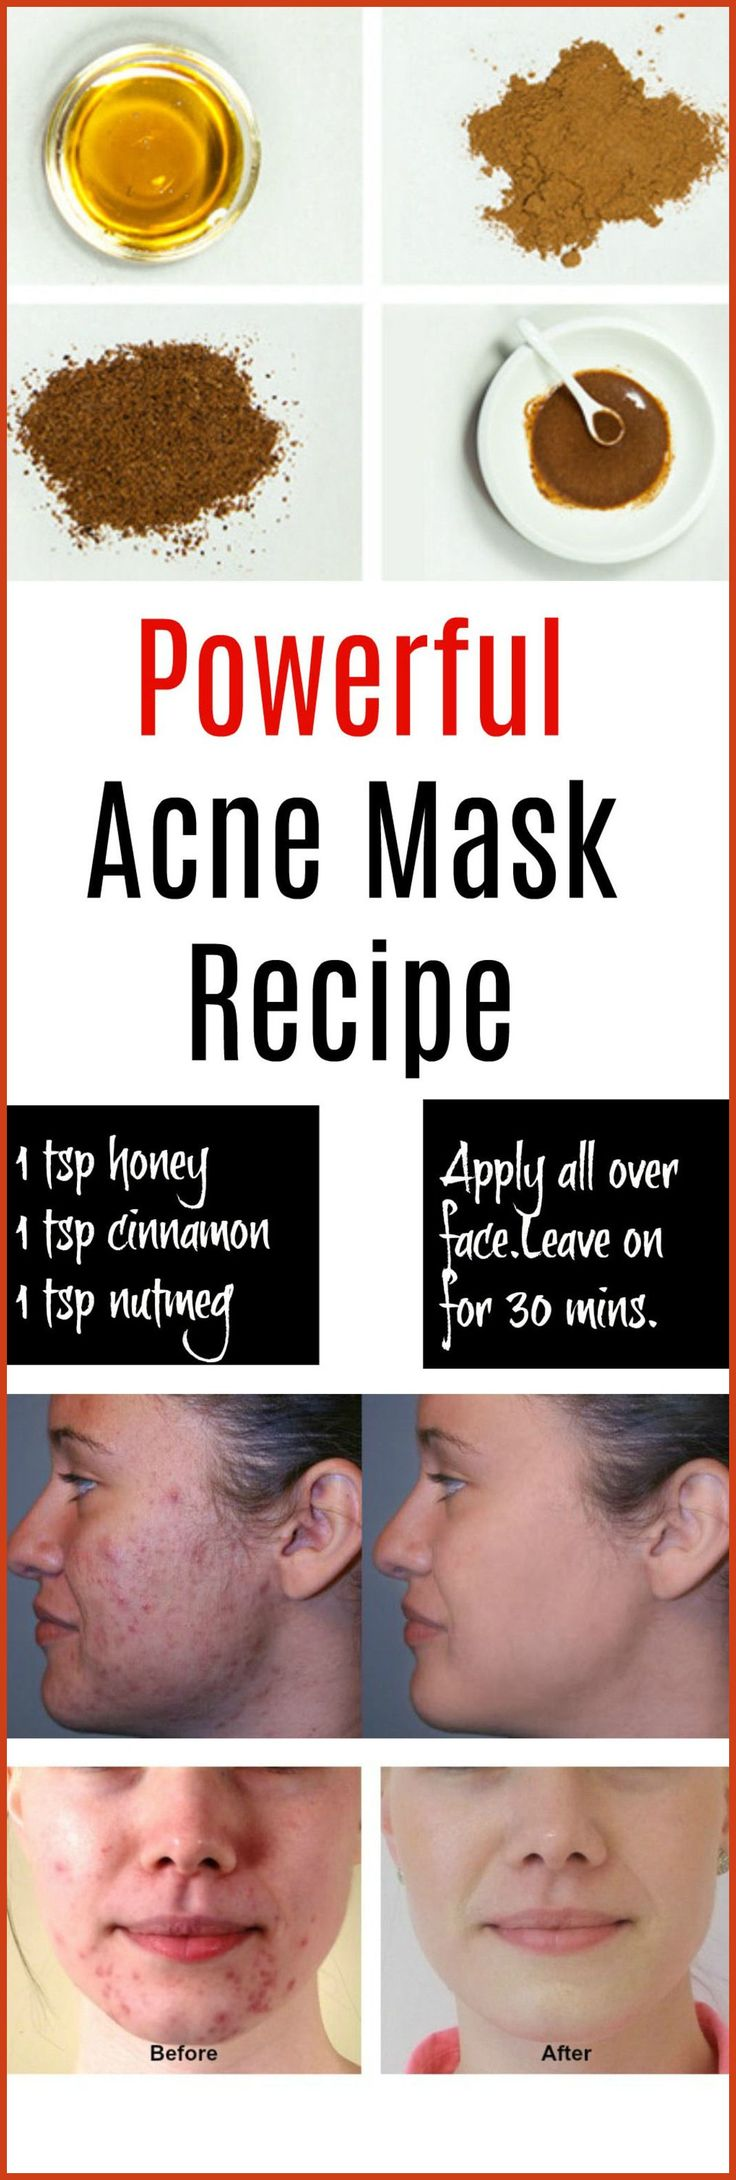 Homemade Acne Treatment - Homemade Acne Remedies - Discover the Top 6 Acne Treatments You Can Make at Home >>> Check out this great article. #AcneTips http://beautifulclearskin.net/category/no-more-acne/